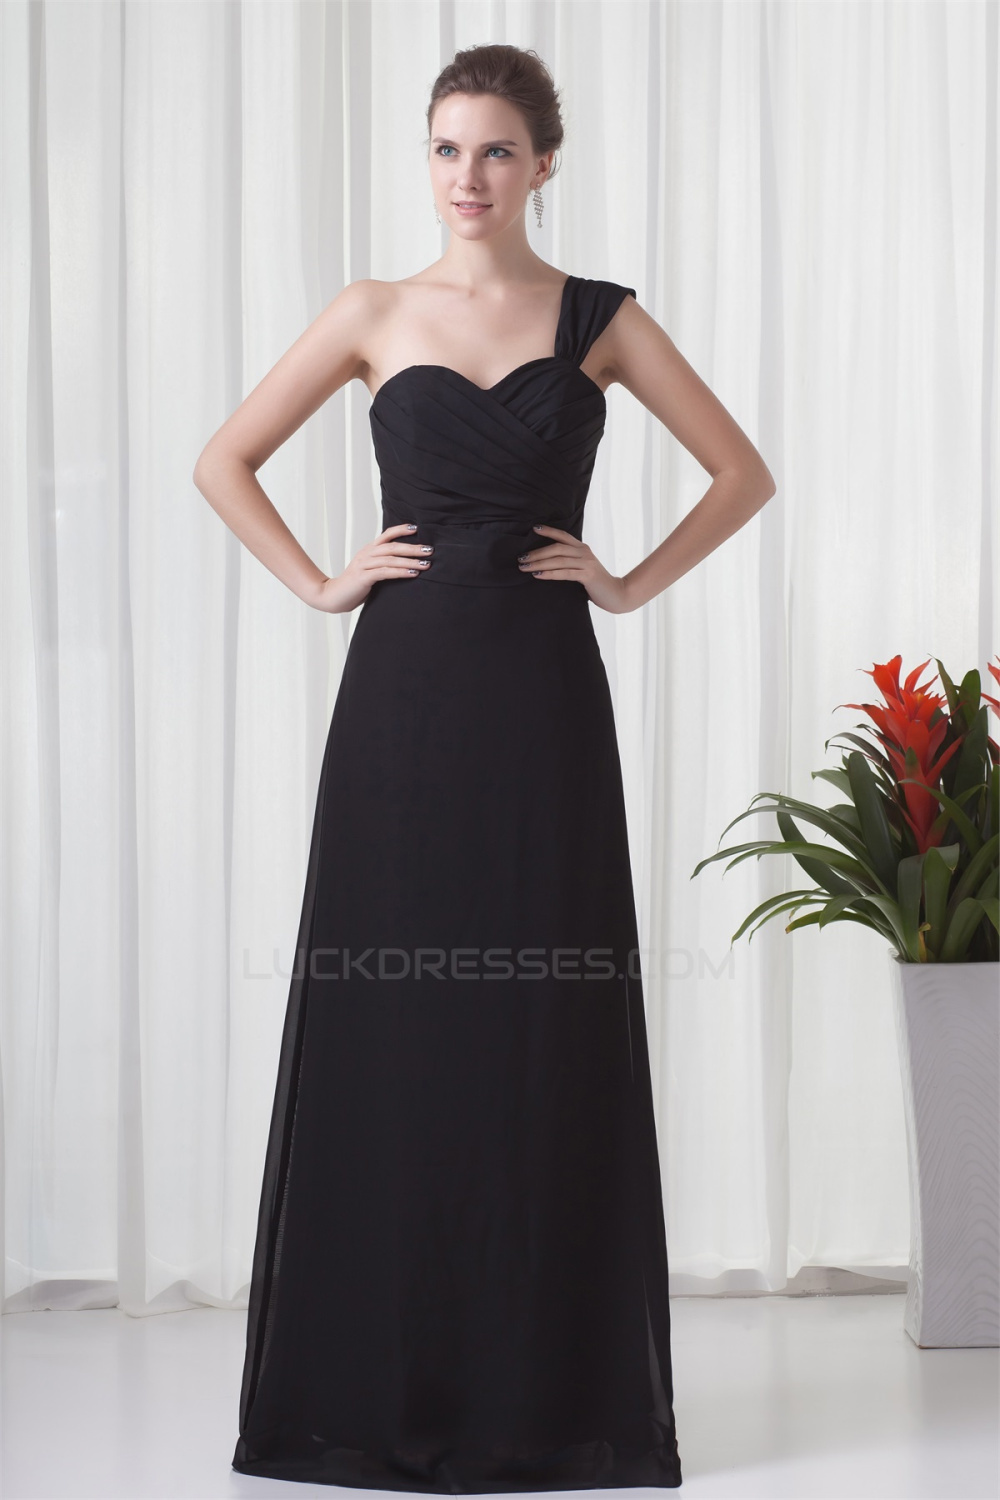 Shoulder sleeveless criss cross floor length long black chiffon one shoulder sleeveless criss cross floor length long black chiffon bridesmaid dresses 02010175 ombrellifo Images